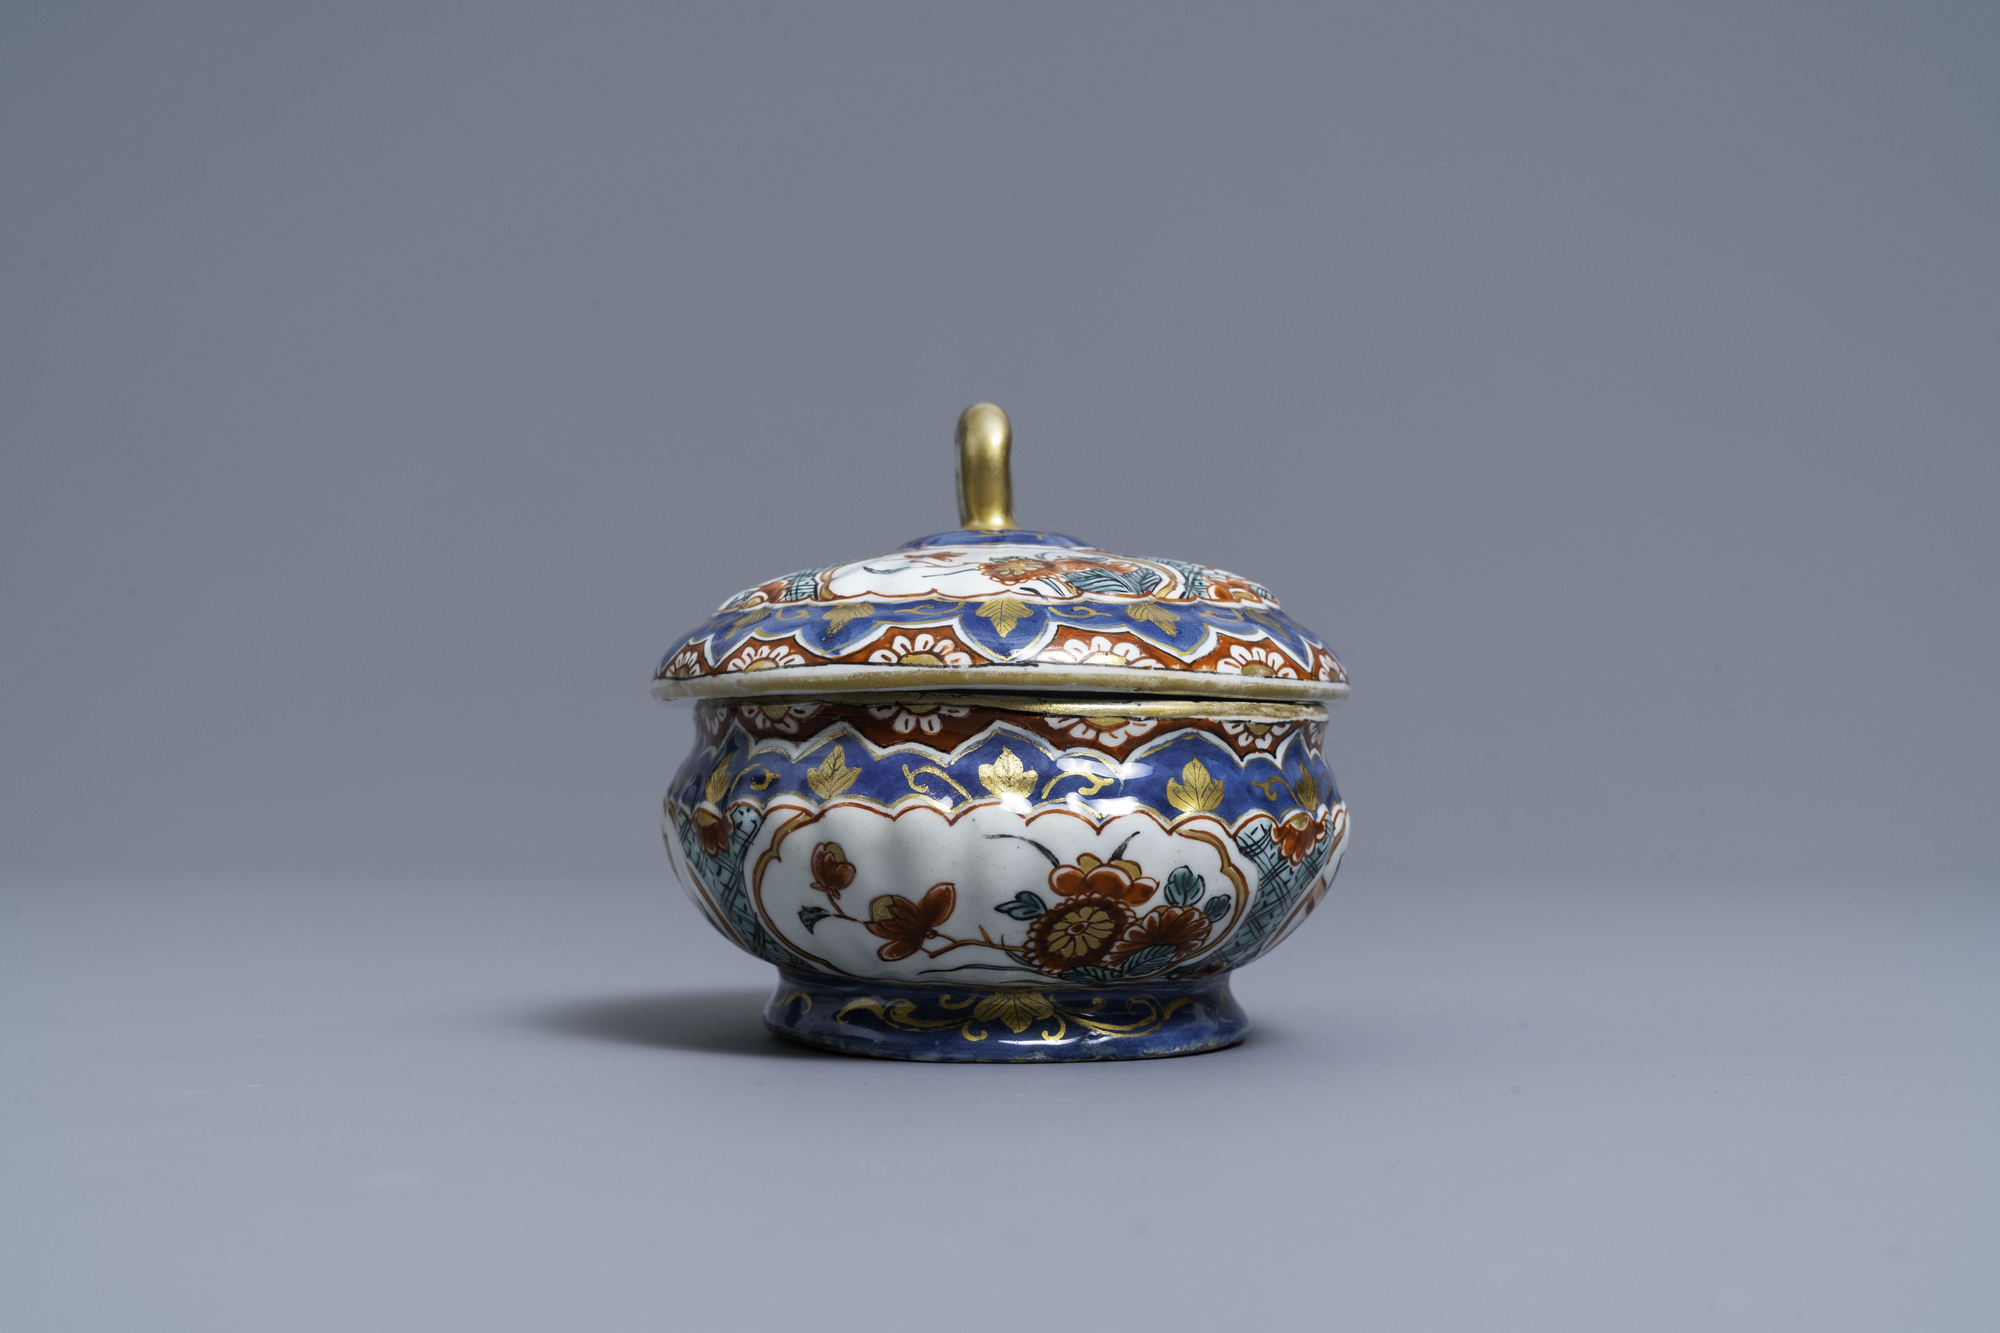 A polychrome and gilded Dutch Delft spice box and cover, early 18th C. - Image 5 of 7